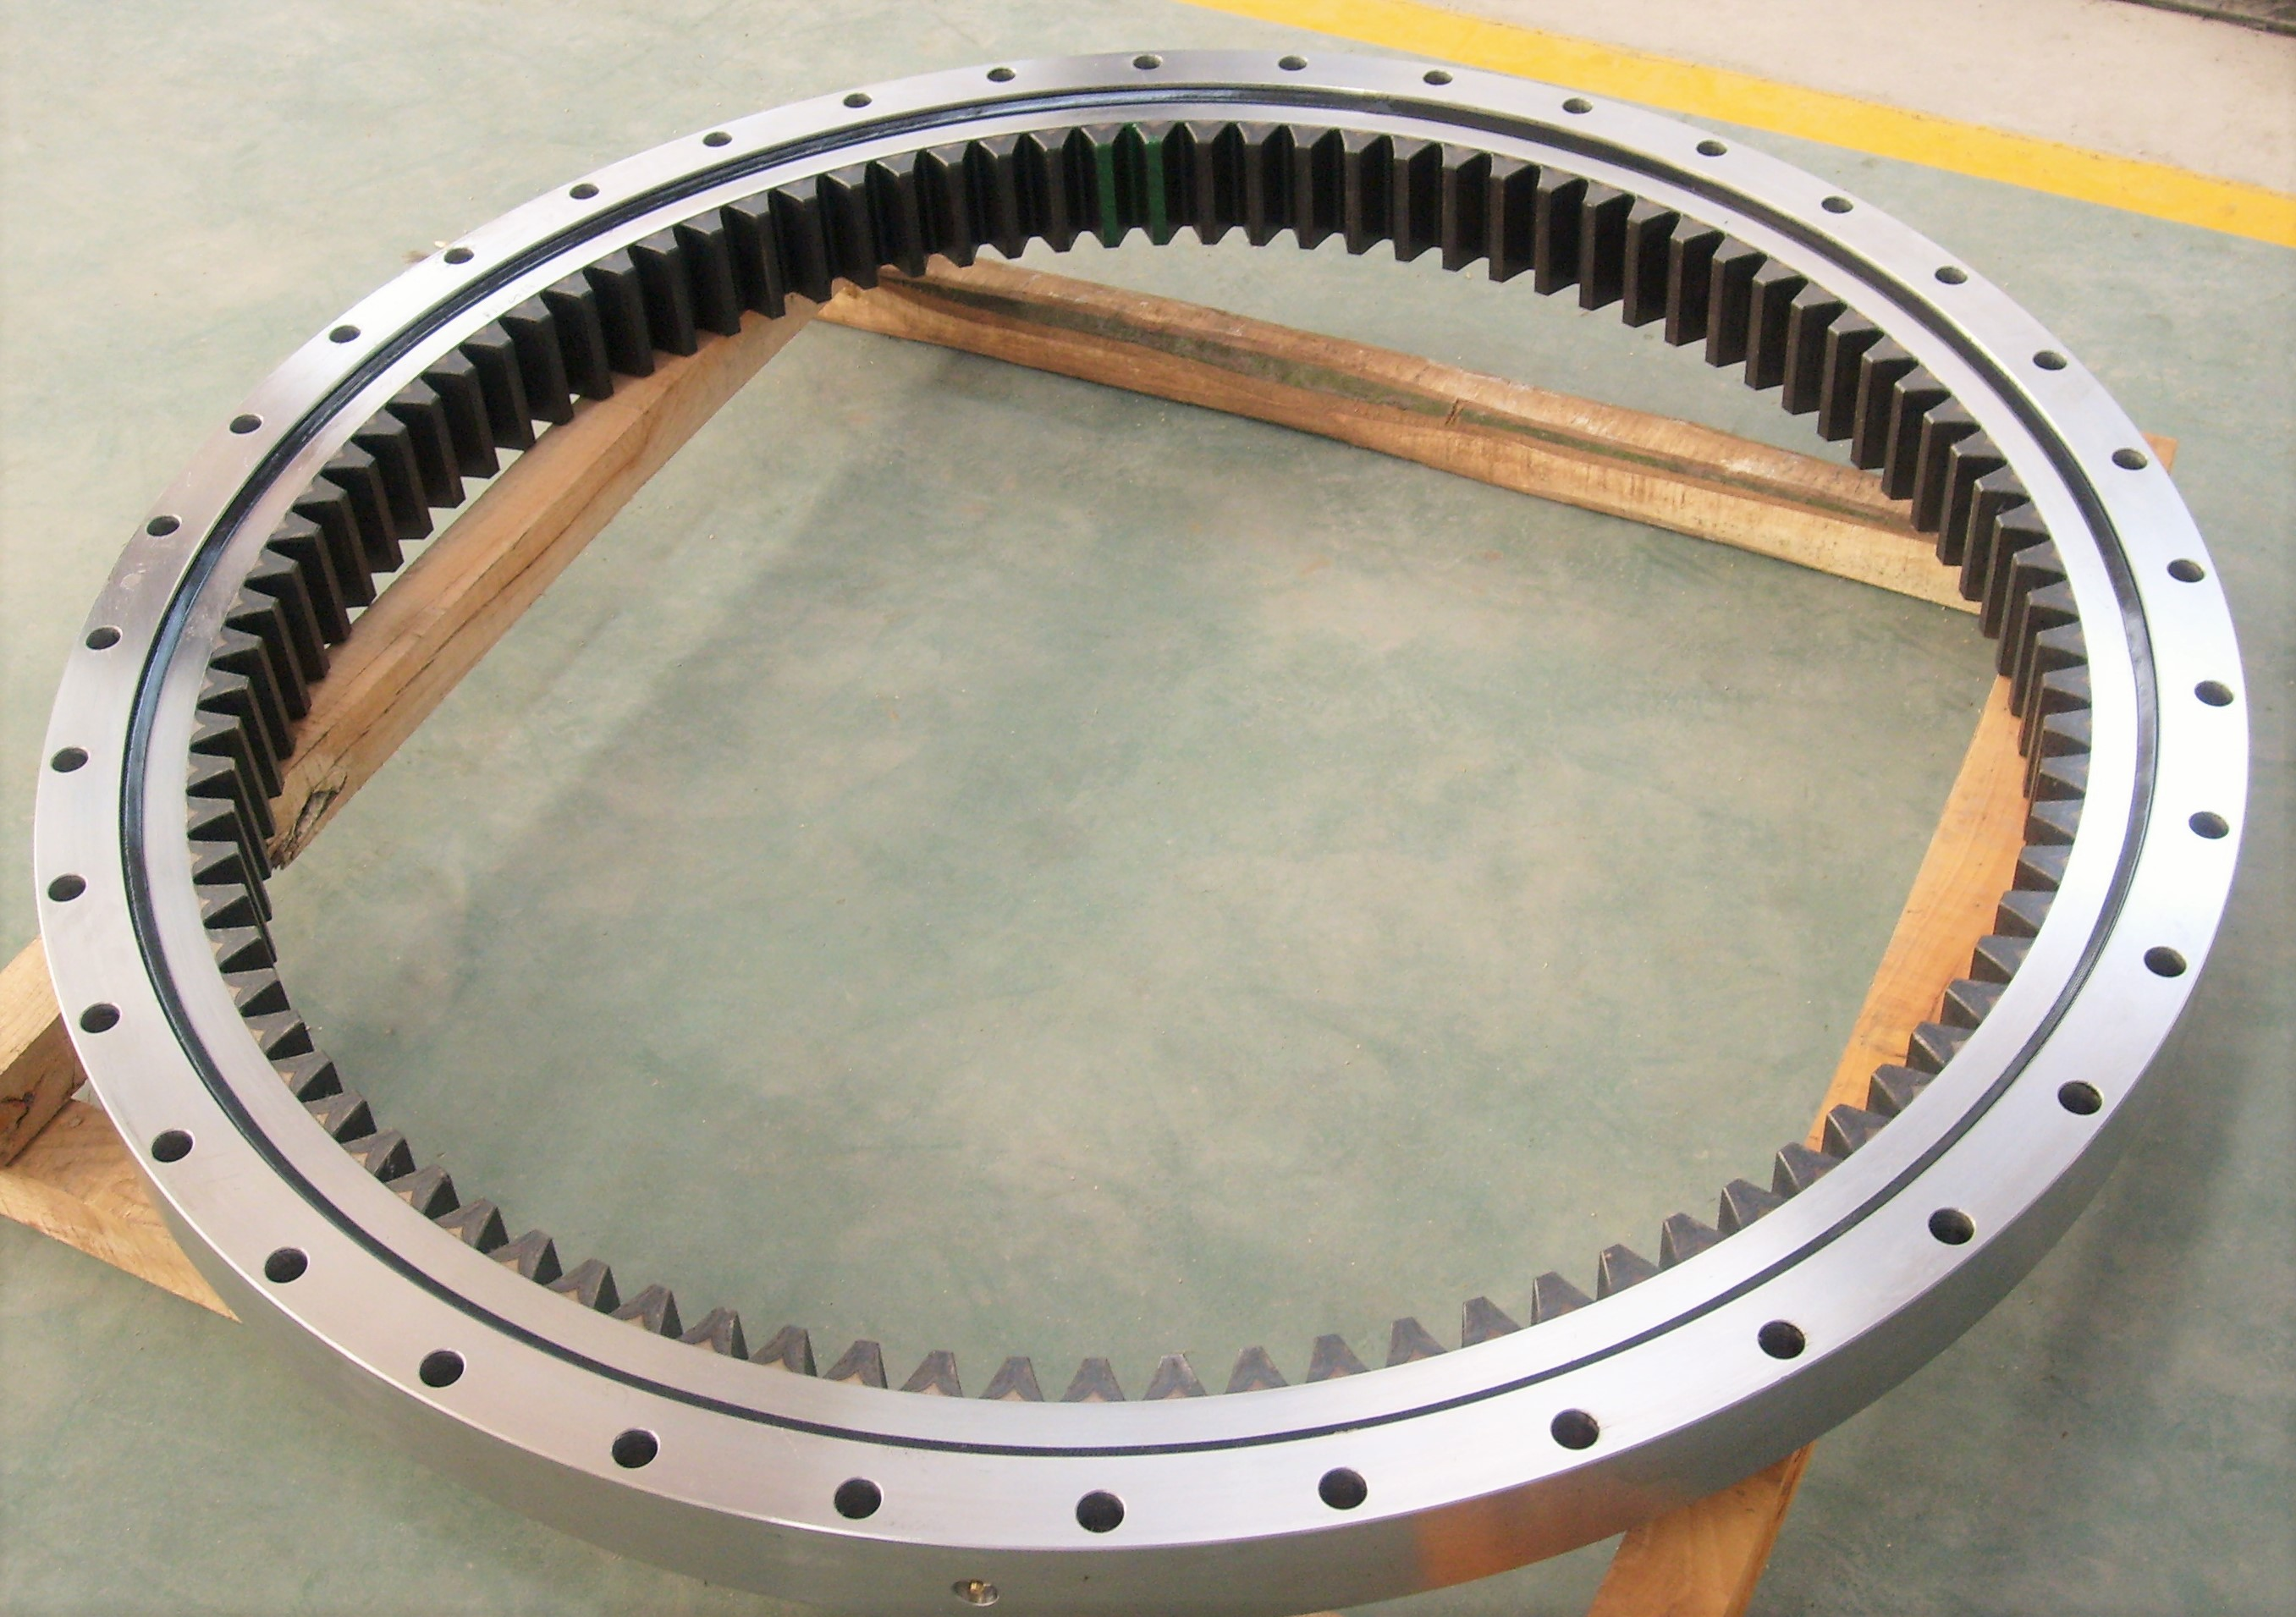 Single-row Four Point Contact Ball Slew Rings without Flange (SCB-HT Series)